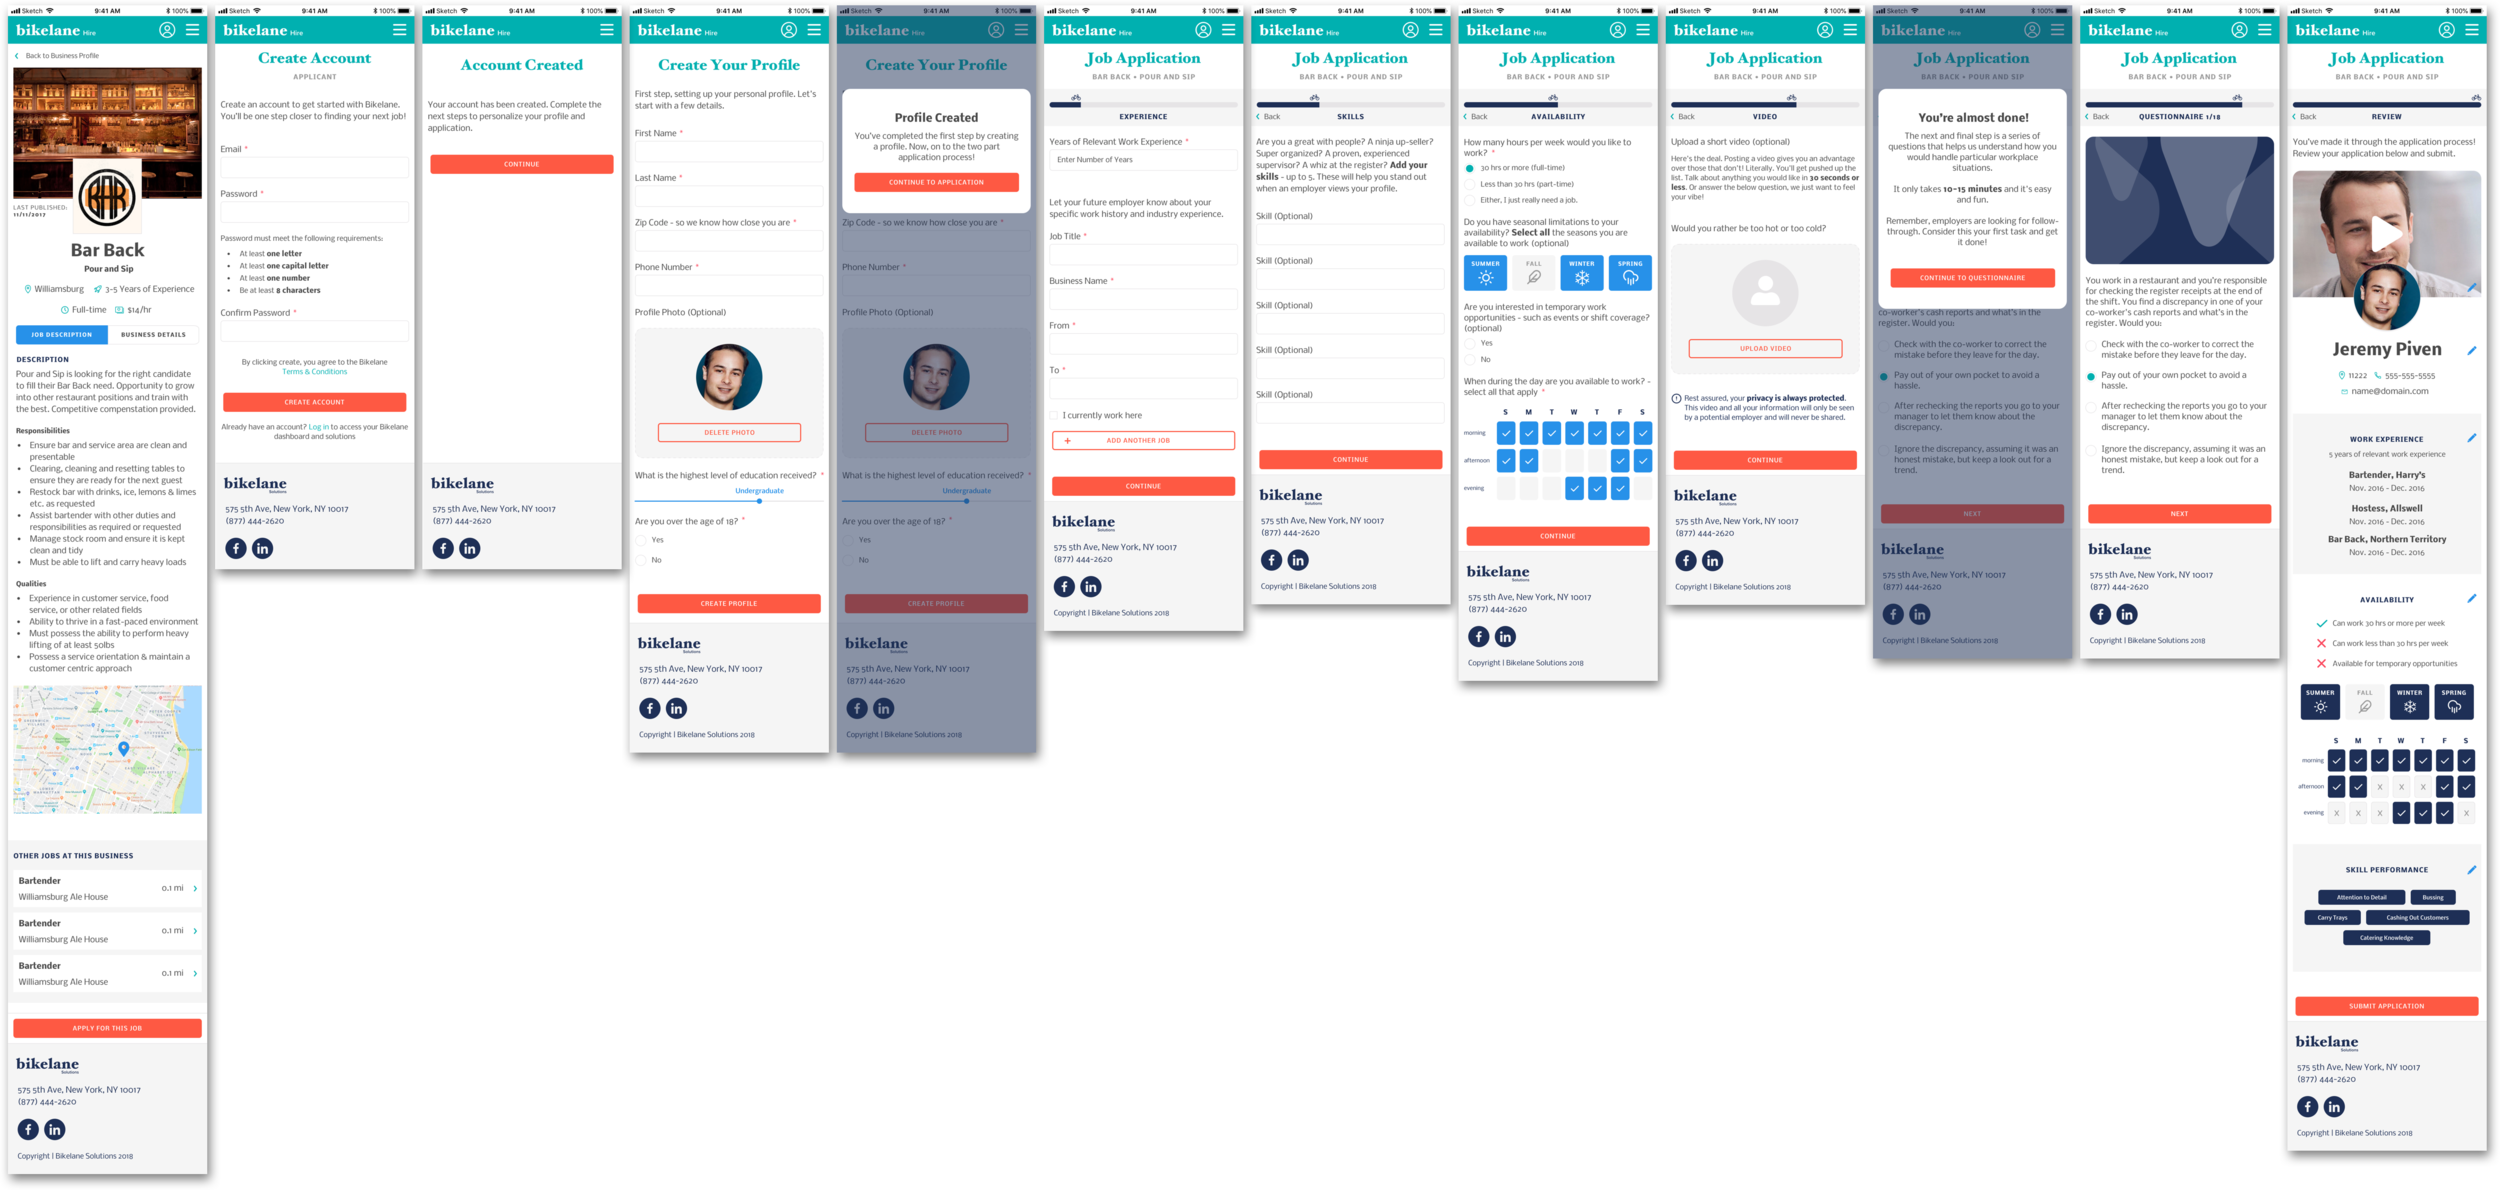 MOBILE EXPERIENCE OF THE JOB APPLICATION PROCESS